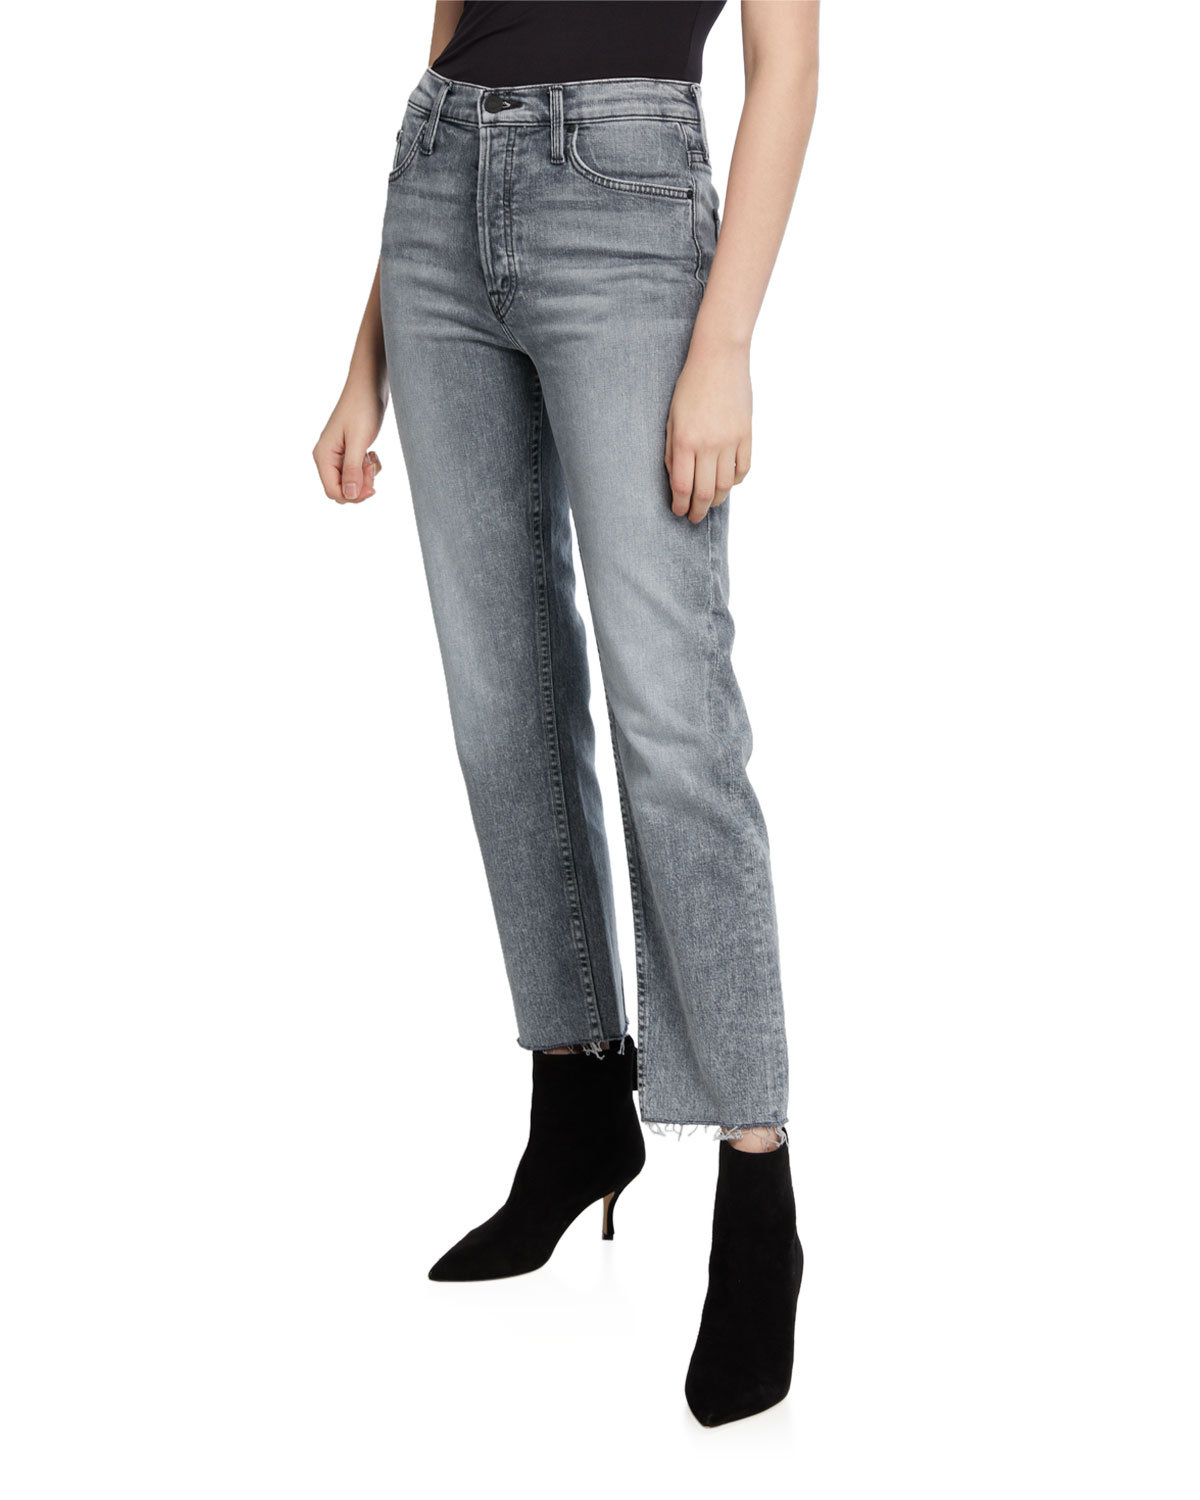 The Tomcat Ankle Fray Straight-Leg Jeans